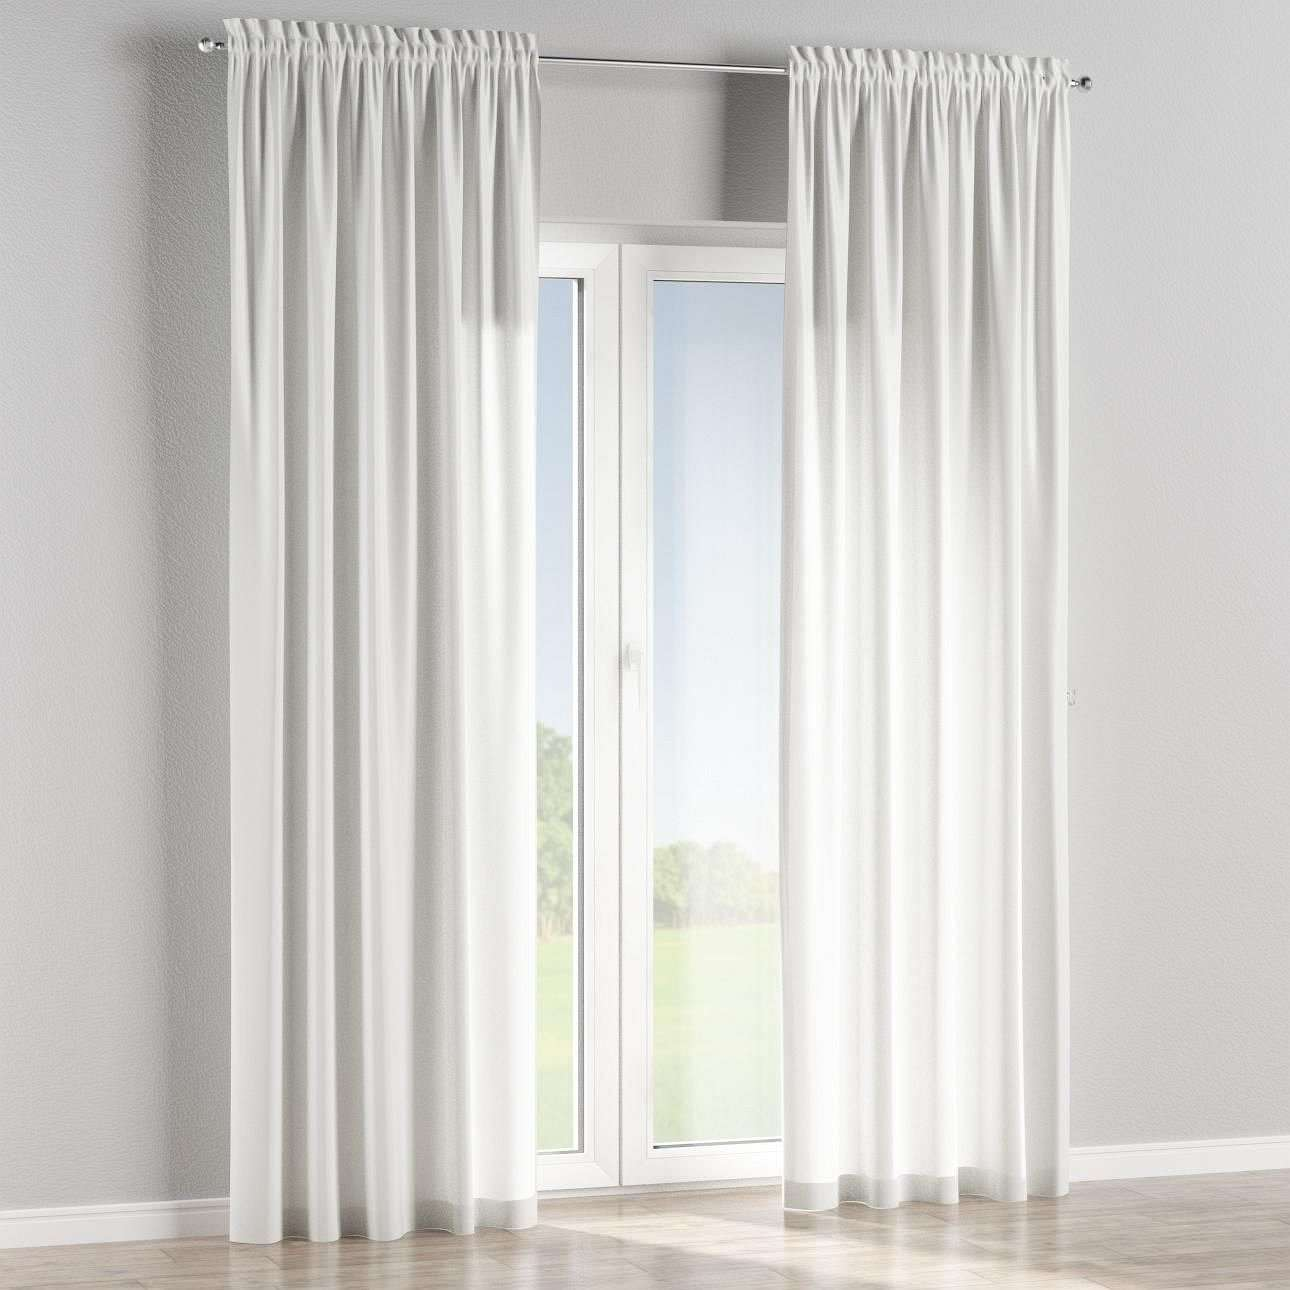 Slot and frill curtains in collection Flowers, fabric: 140-90